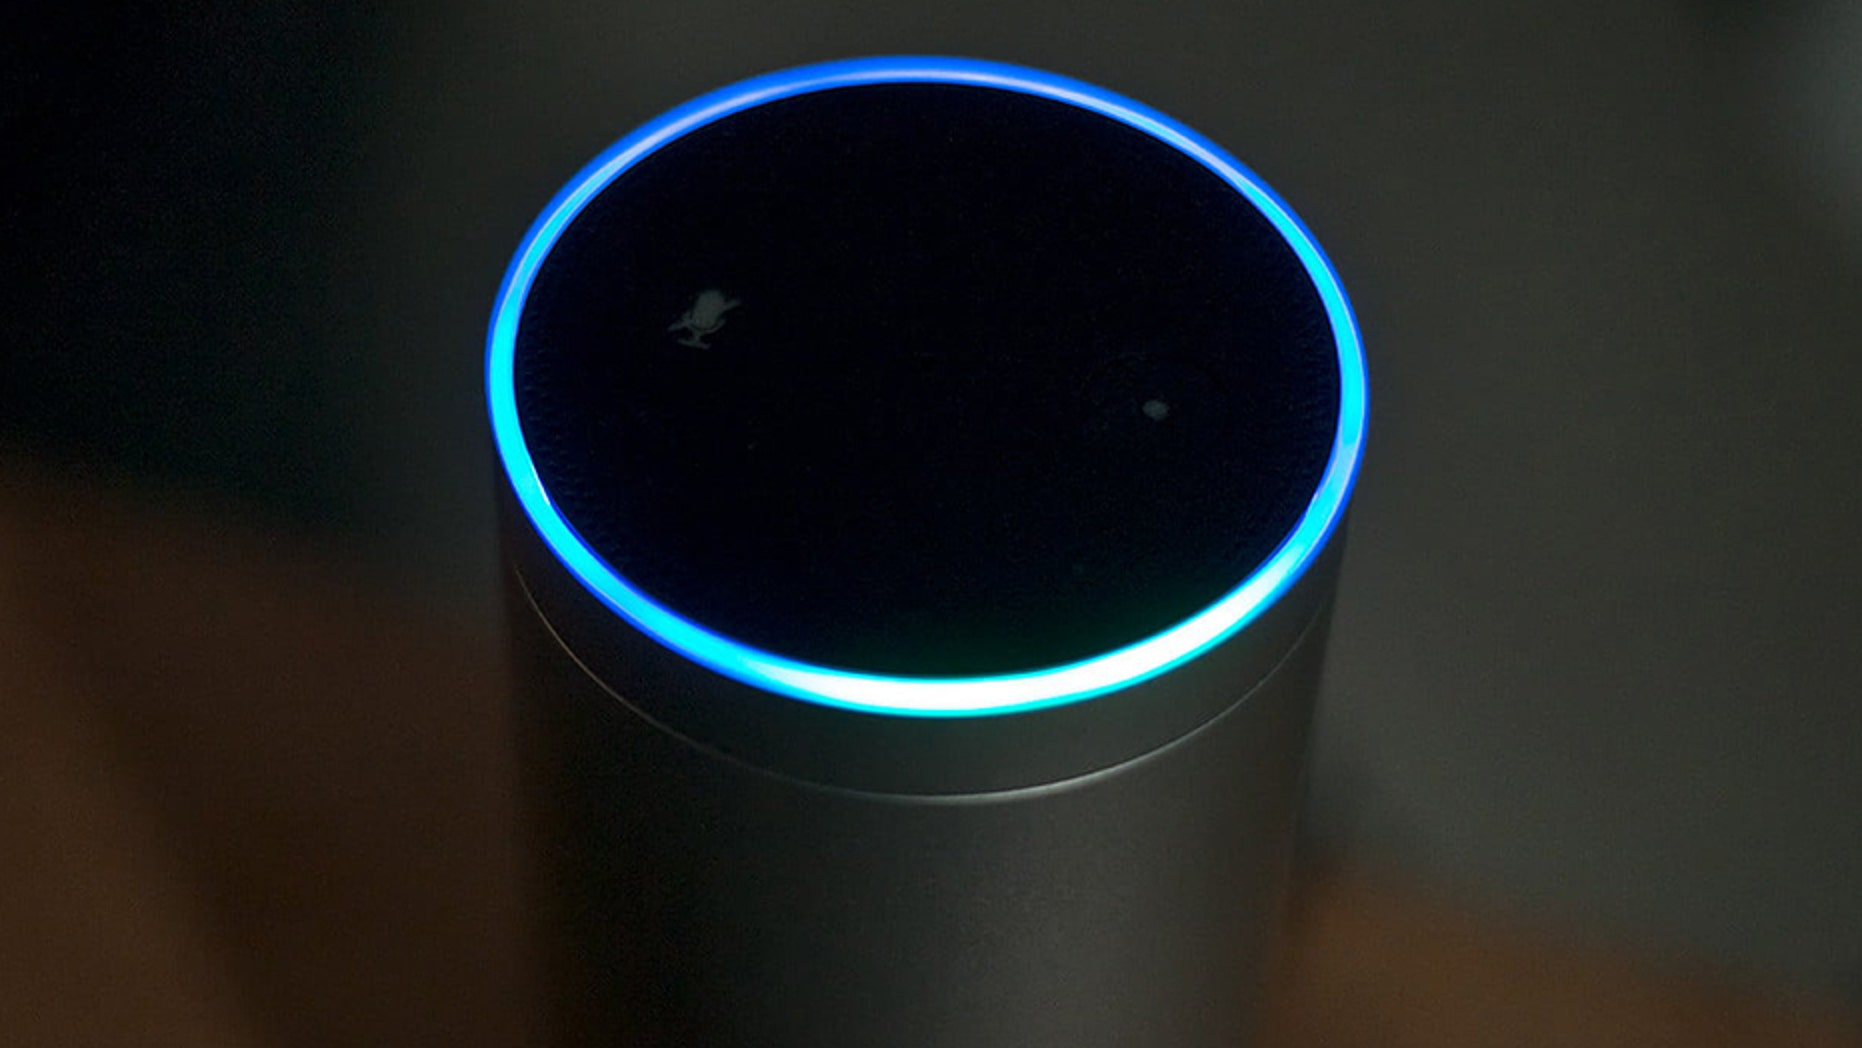 The fear of the future is here: Amazon's Alexa is malfunctioning, scaring many frightened users with creepy, maniacal laughter totally unprompted.